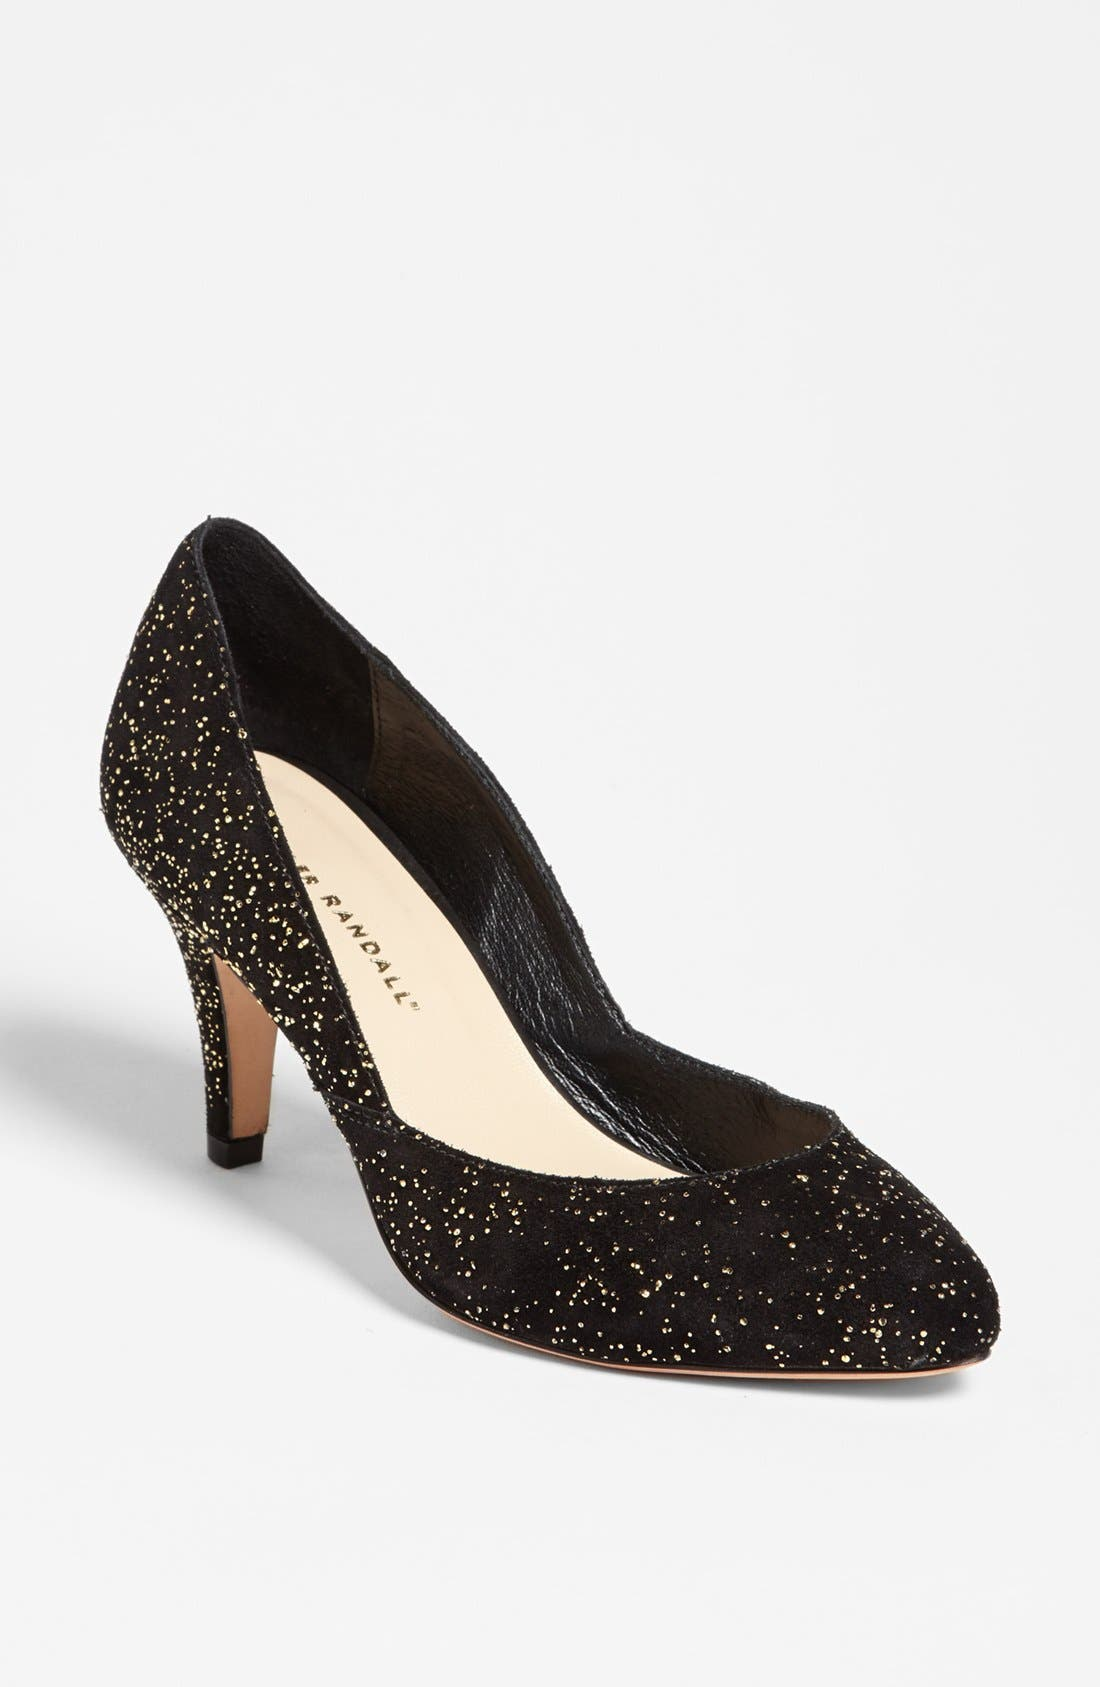 Alternate Image 1 Selected - Loeffler Randall 'Tamsin' Pump (Online Only)